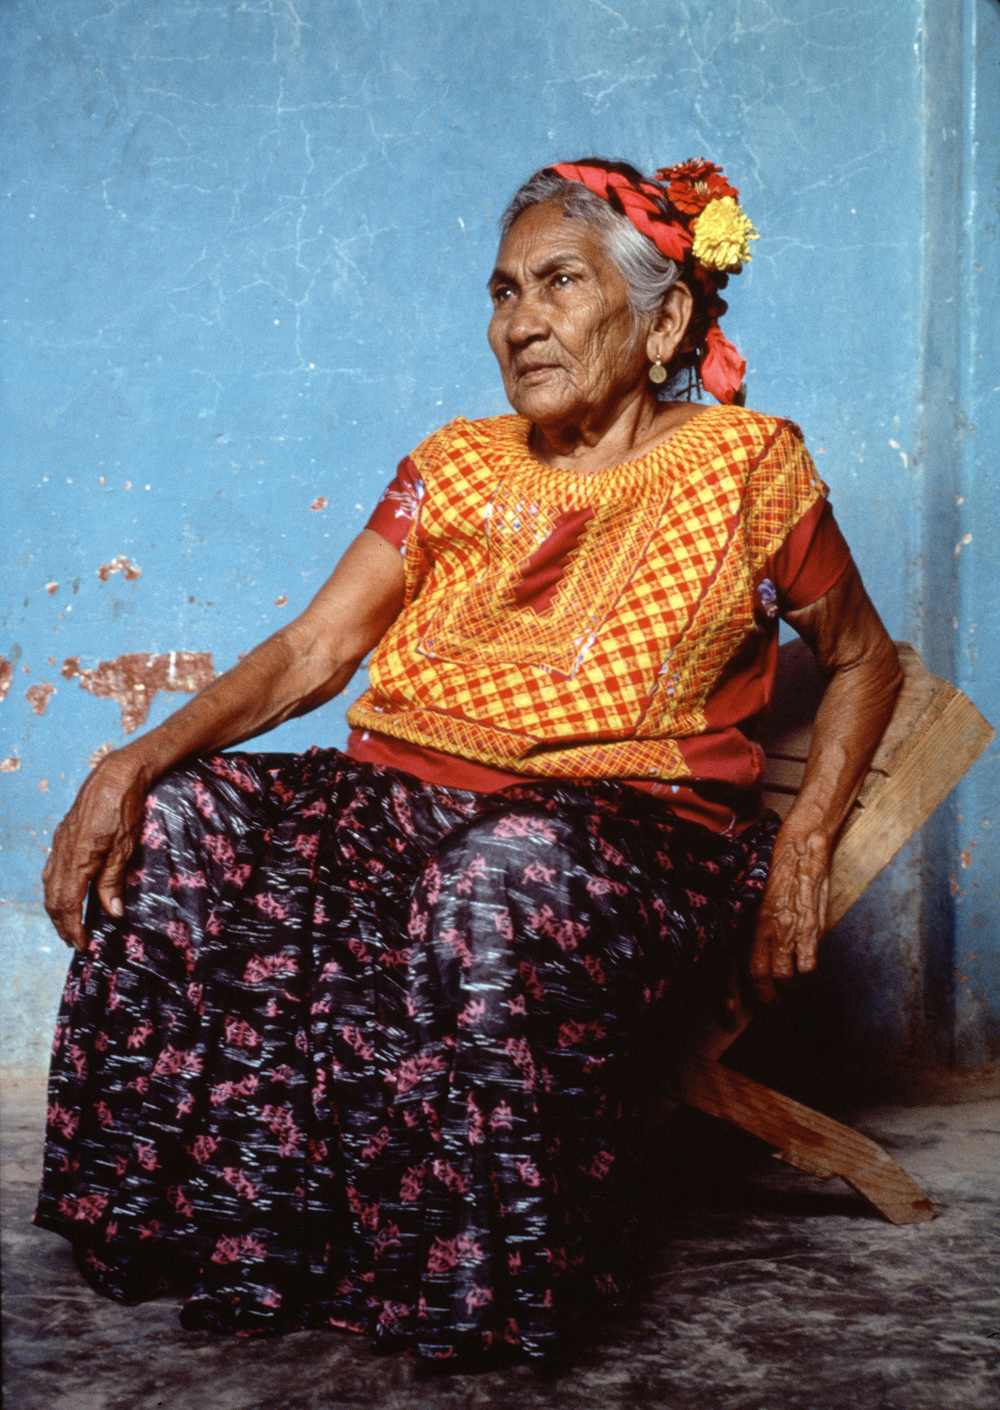 Zapotec Indian Woman in Juchitan, Oaxaca, 1990. Source: UN Photo/F. Keery